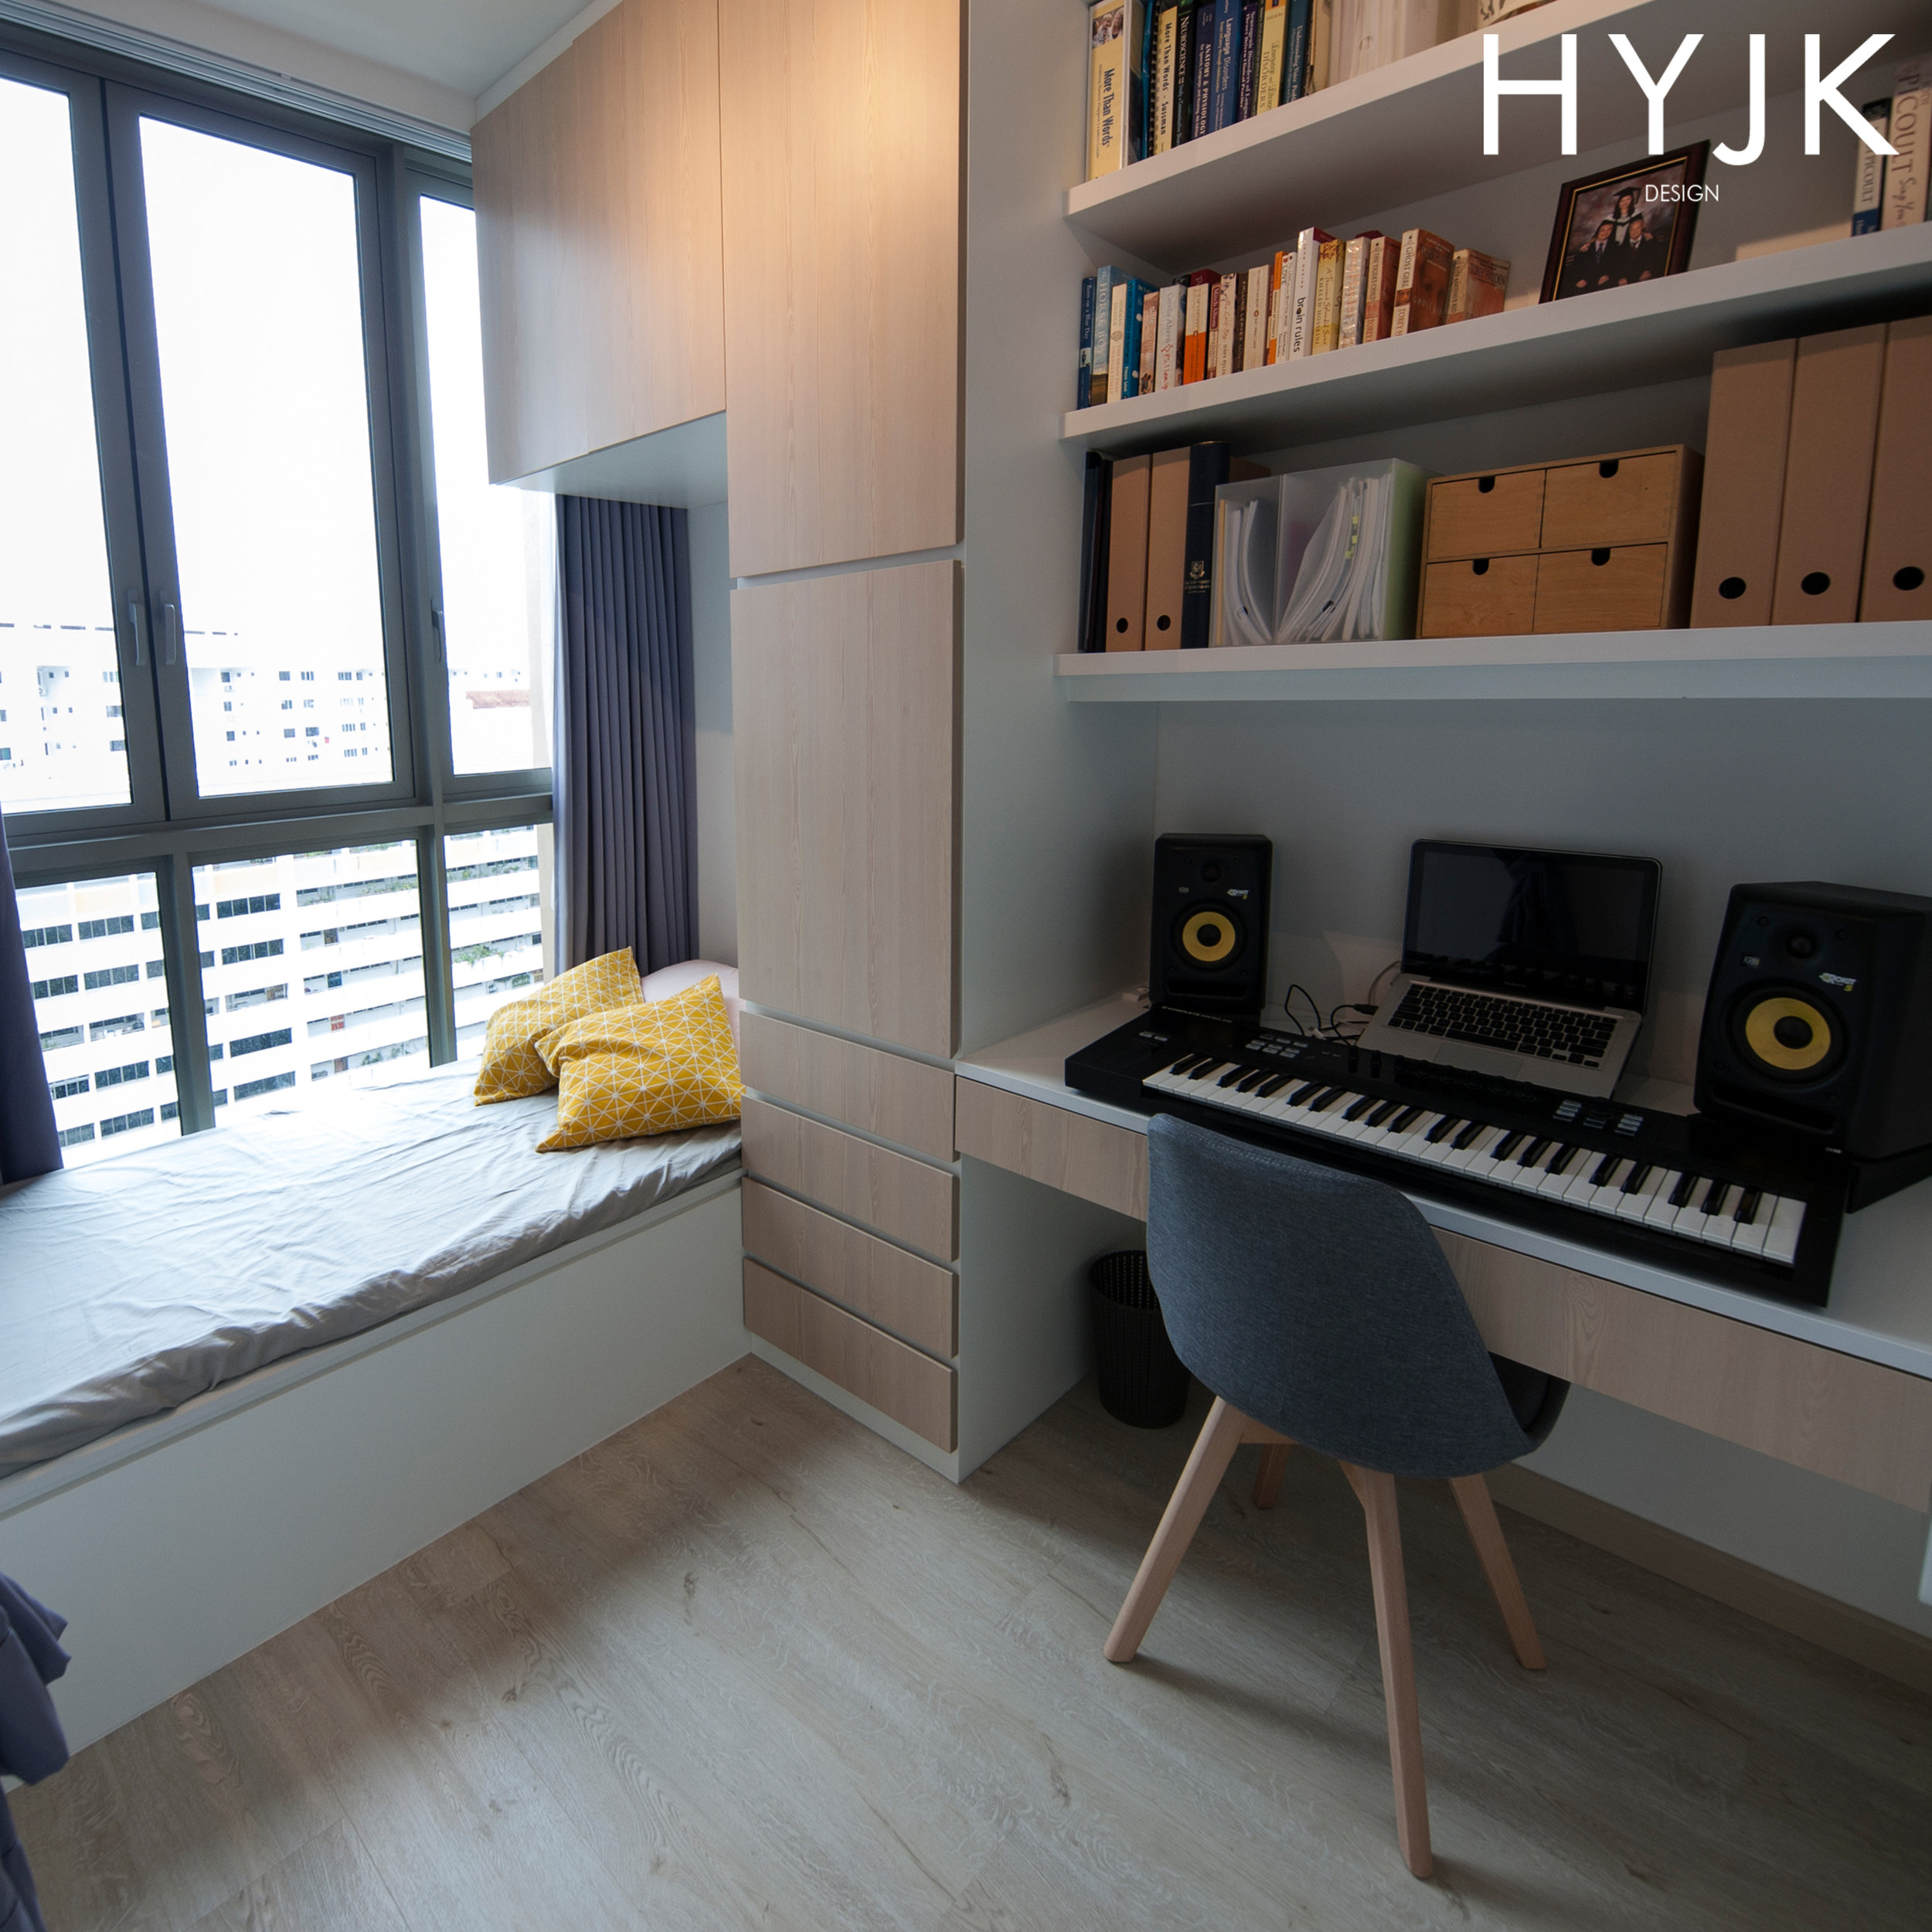 Music studio, study and guest room - all in one!